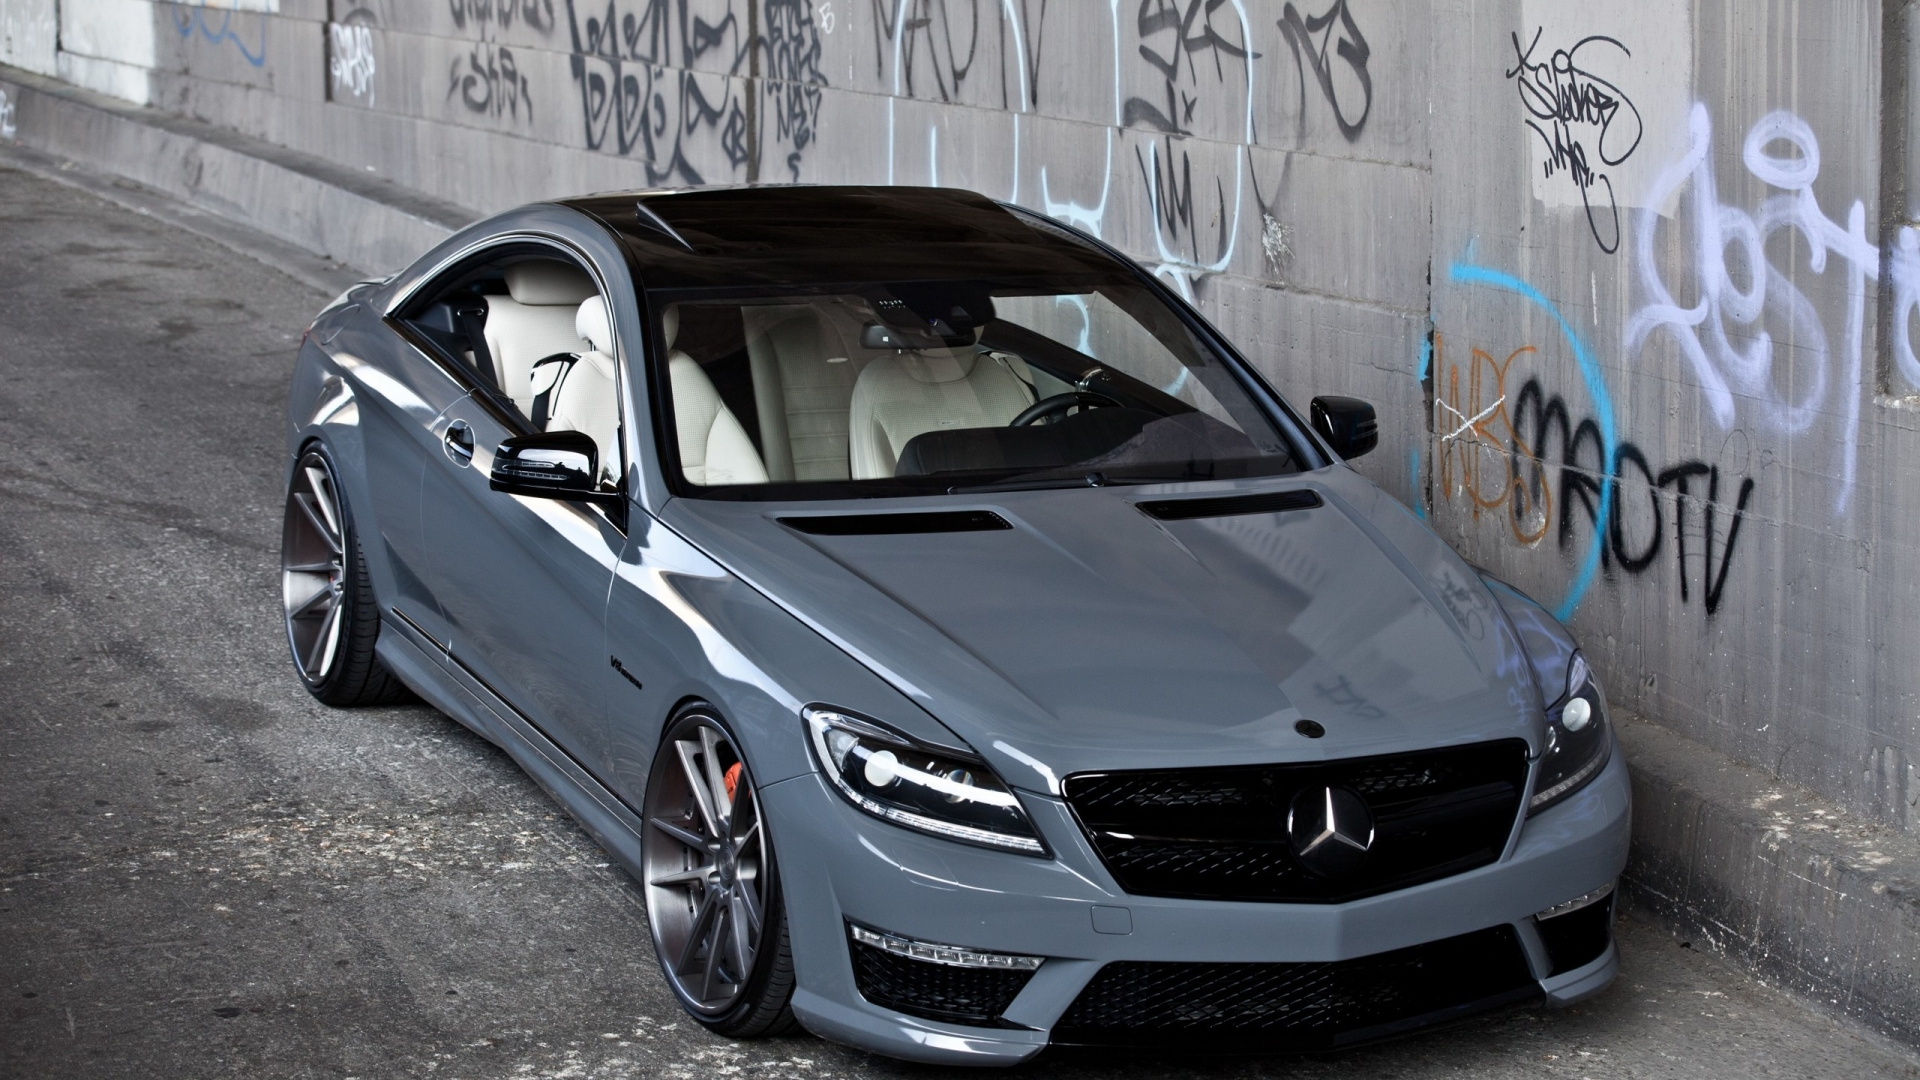 Mercedes CL63 AMG for 1920 x 1080 HDTV 1080p resolution